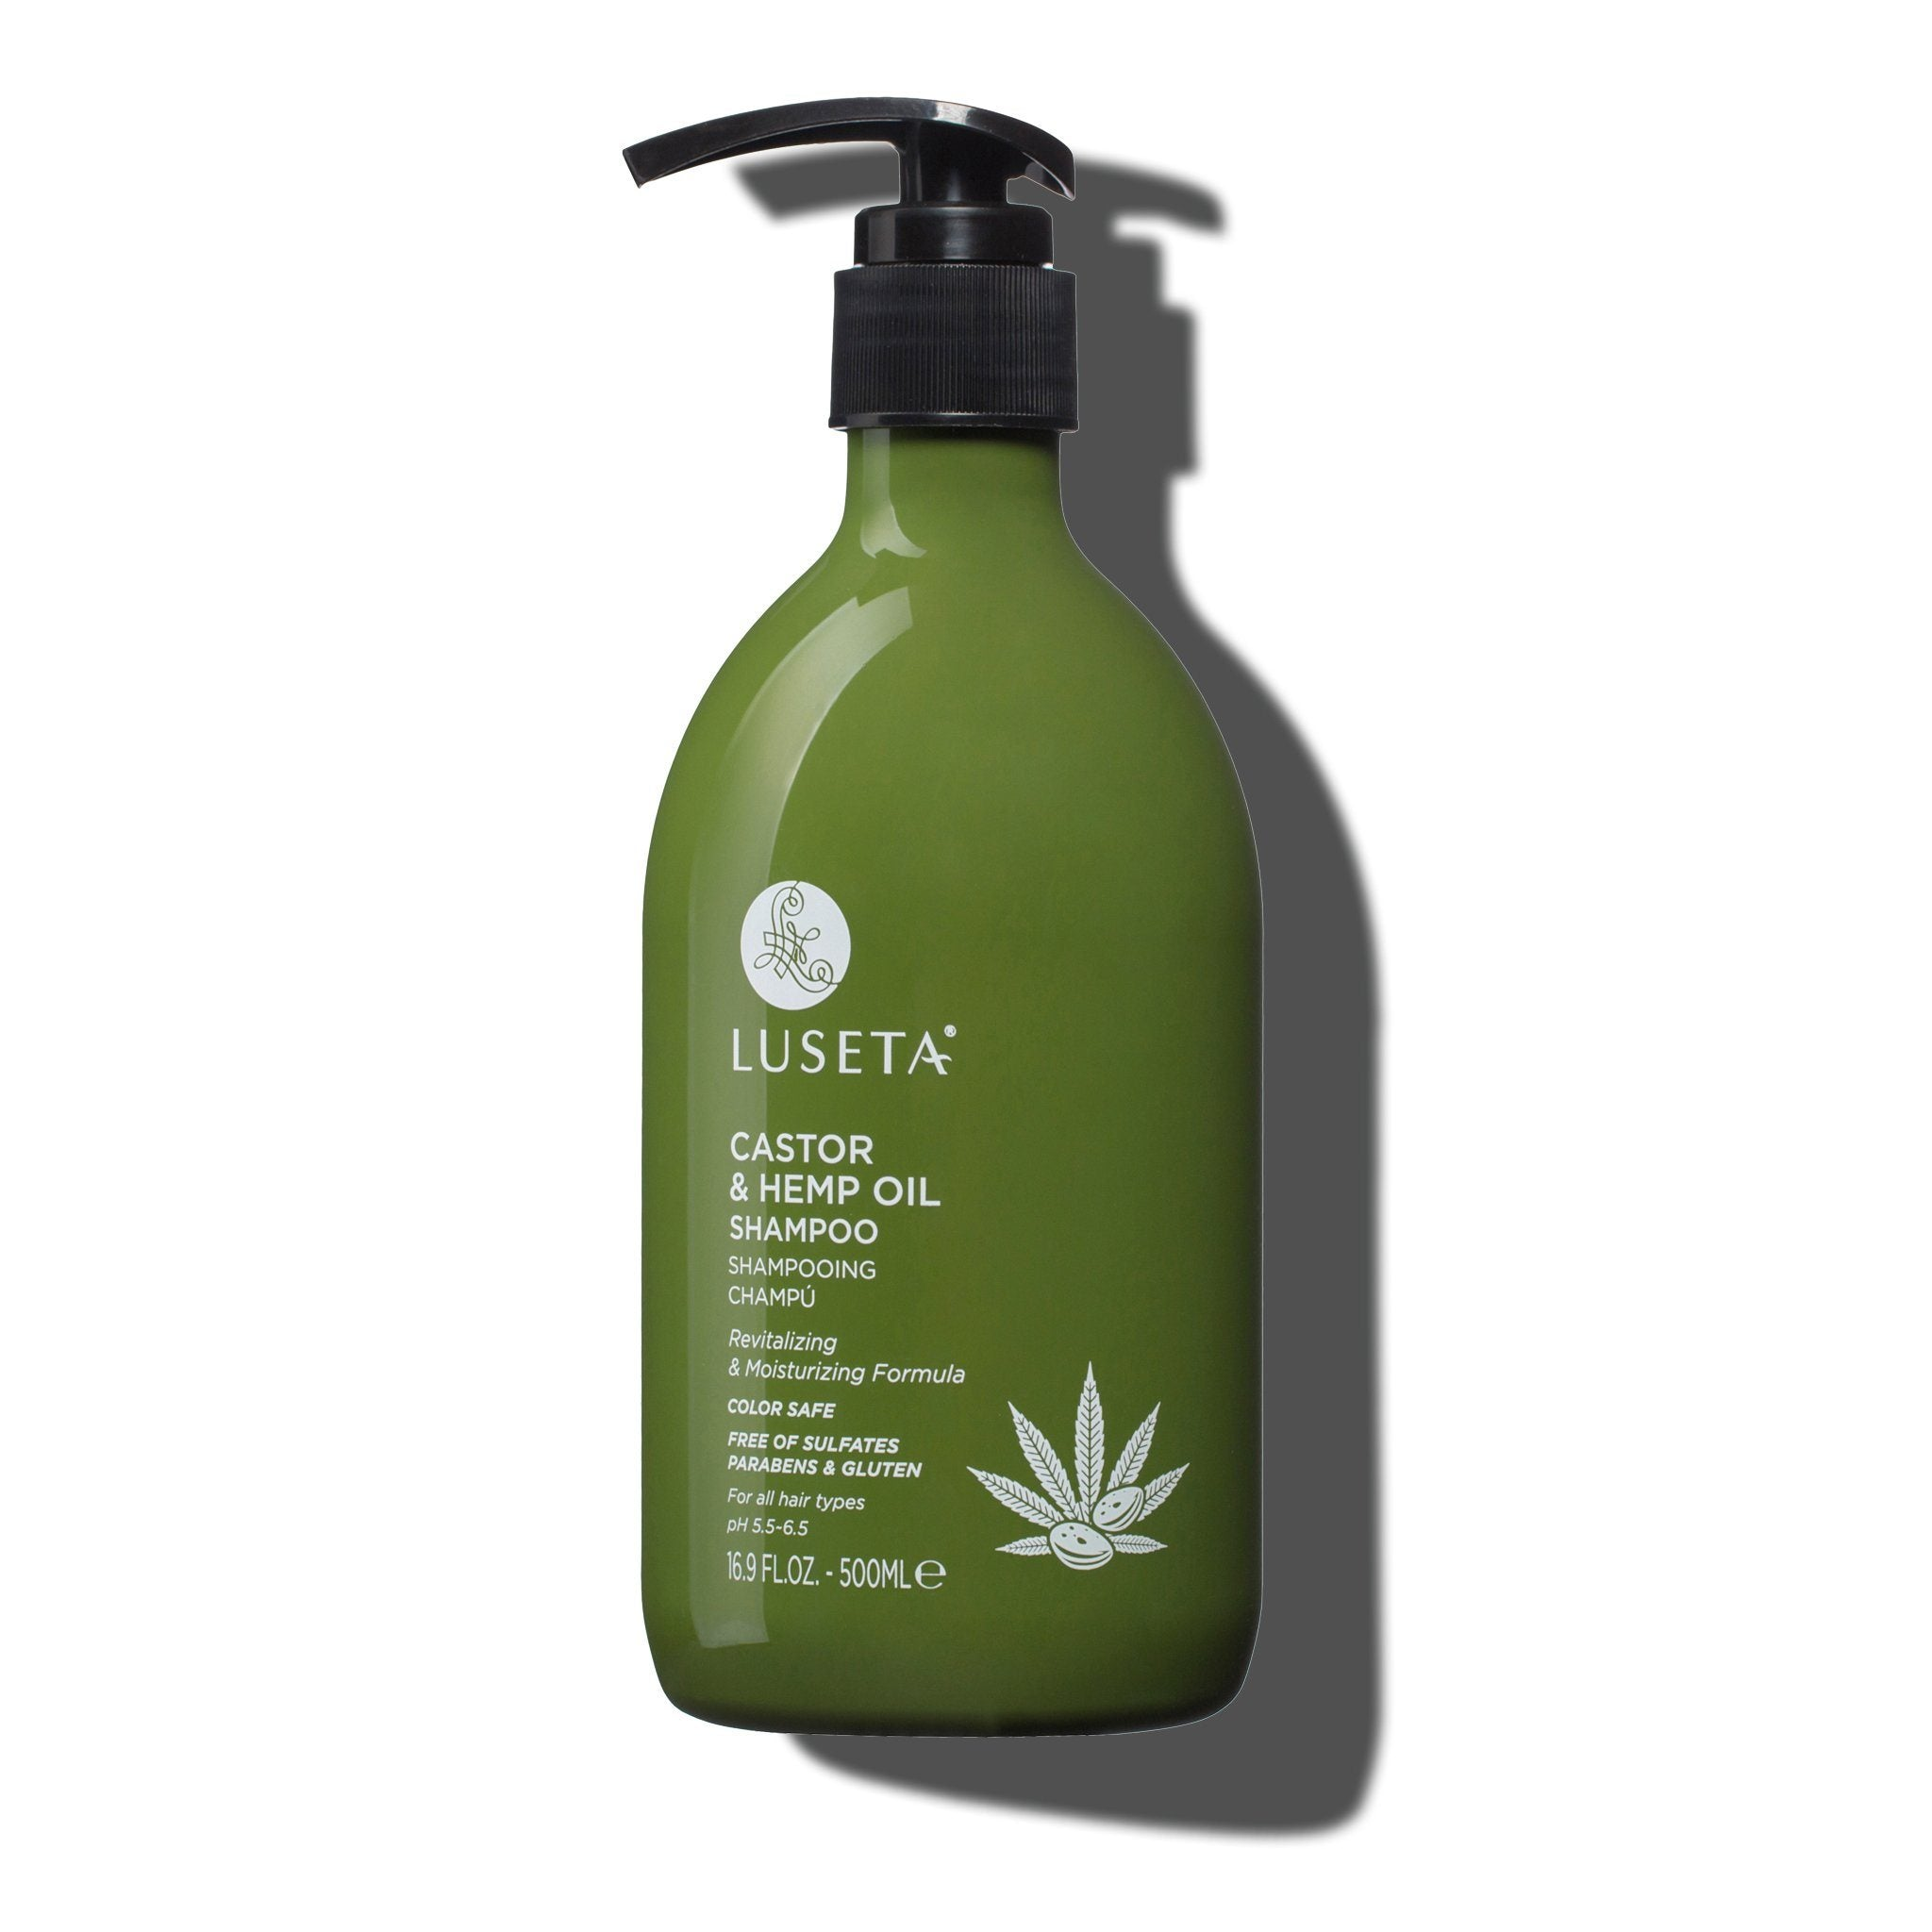 Castor & Hemp Oil Shampoo